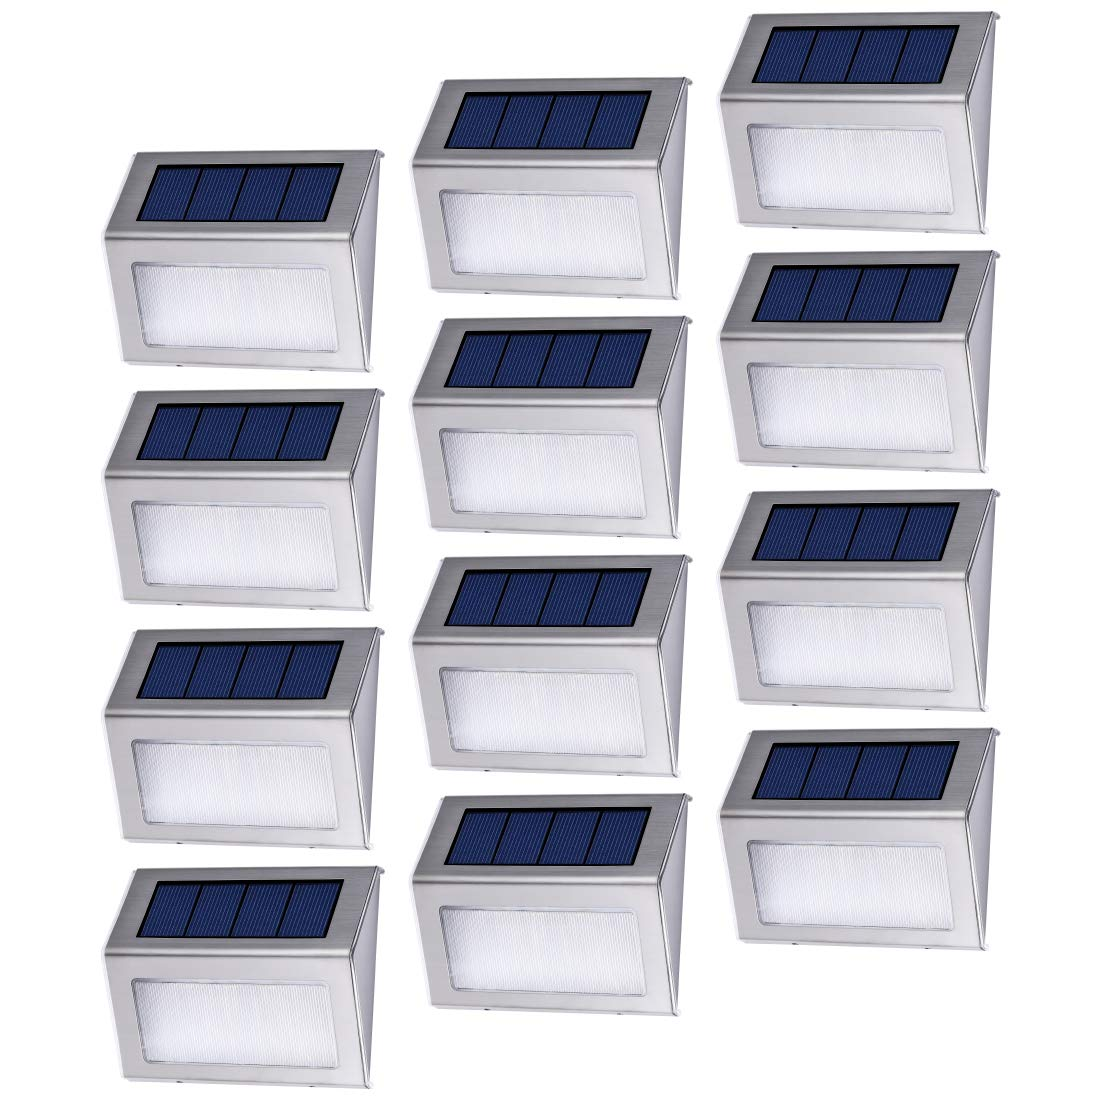 Dyxin 12 Pack Solar Powered Deck Lights Wireless Bright LED Stair Lights Auto On/Off Waterproof Stainless Steel Decorative Outdoor Step Lighting for Driveway Fences Pathway Staircase (White Light)